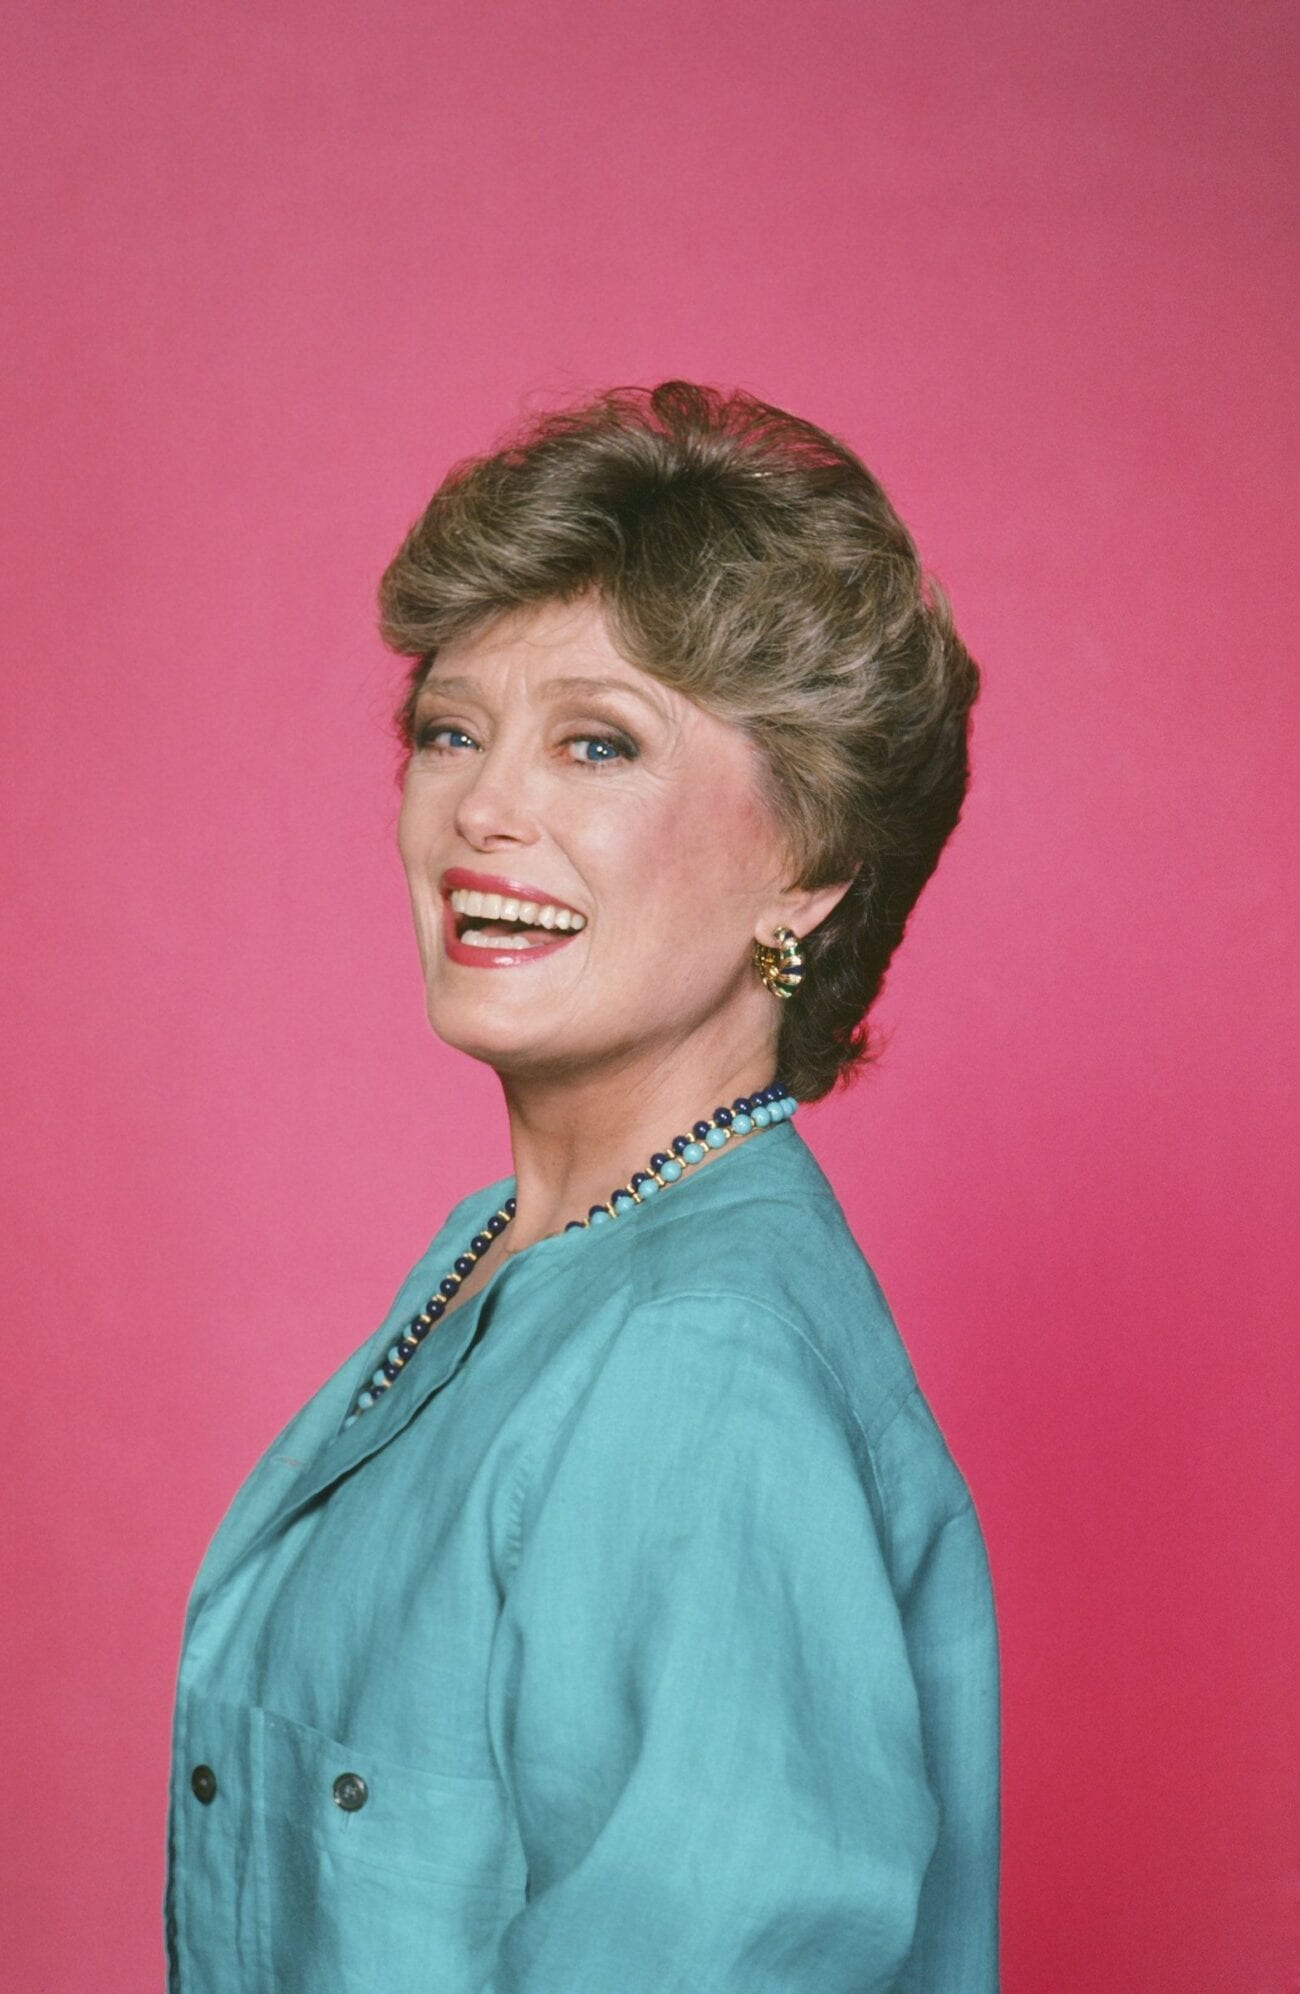 We feel it is appropriate to revisit our love of Blanche Devereaux. Here are some iconic one-liners from Blanche on 'The Golden Girls'.